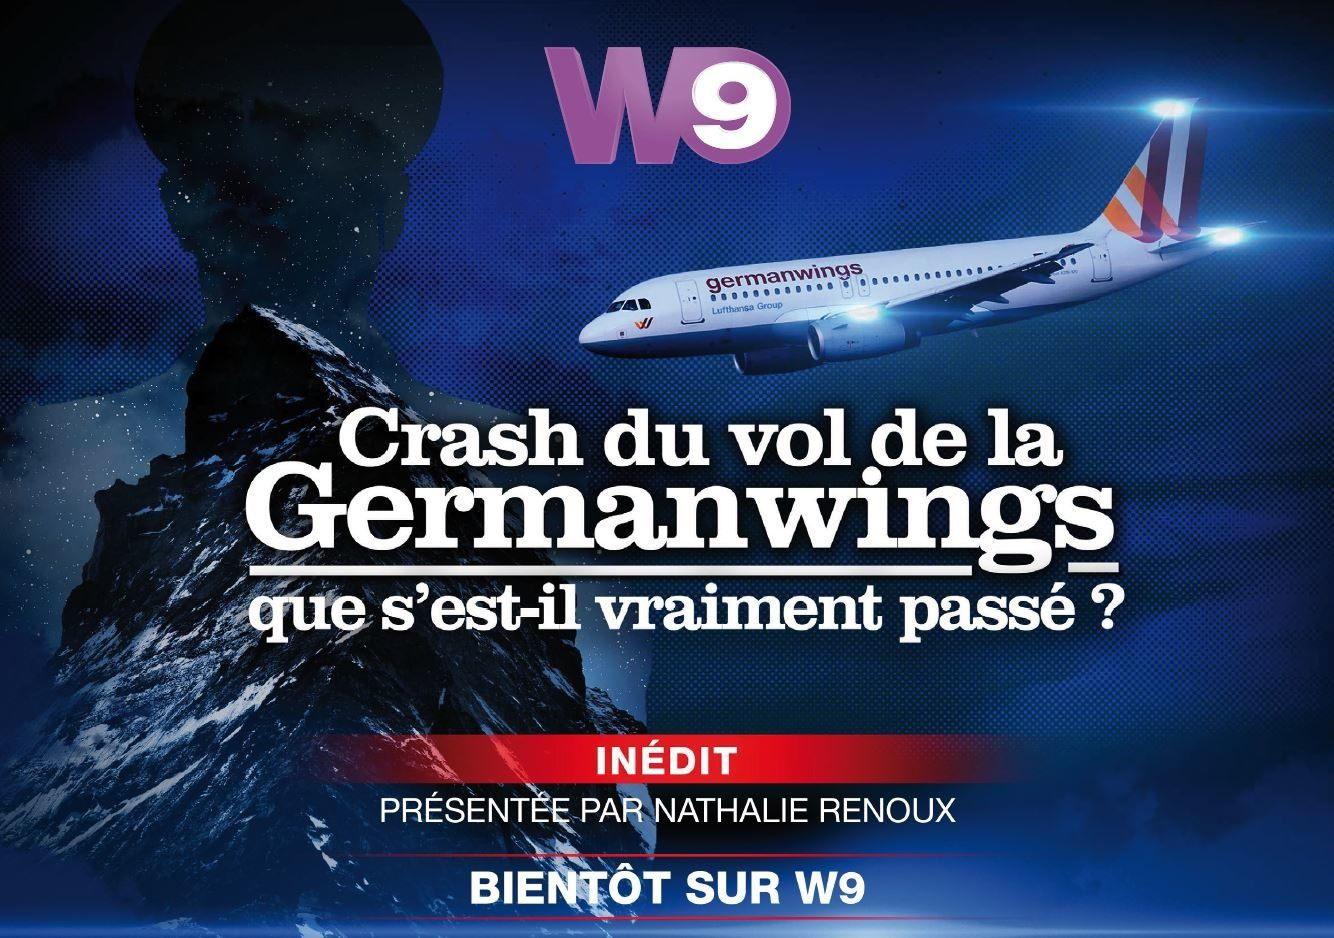 Crash du vol de la Germanwings : documentaire inédit ce mardi sur W9.